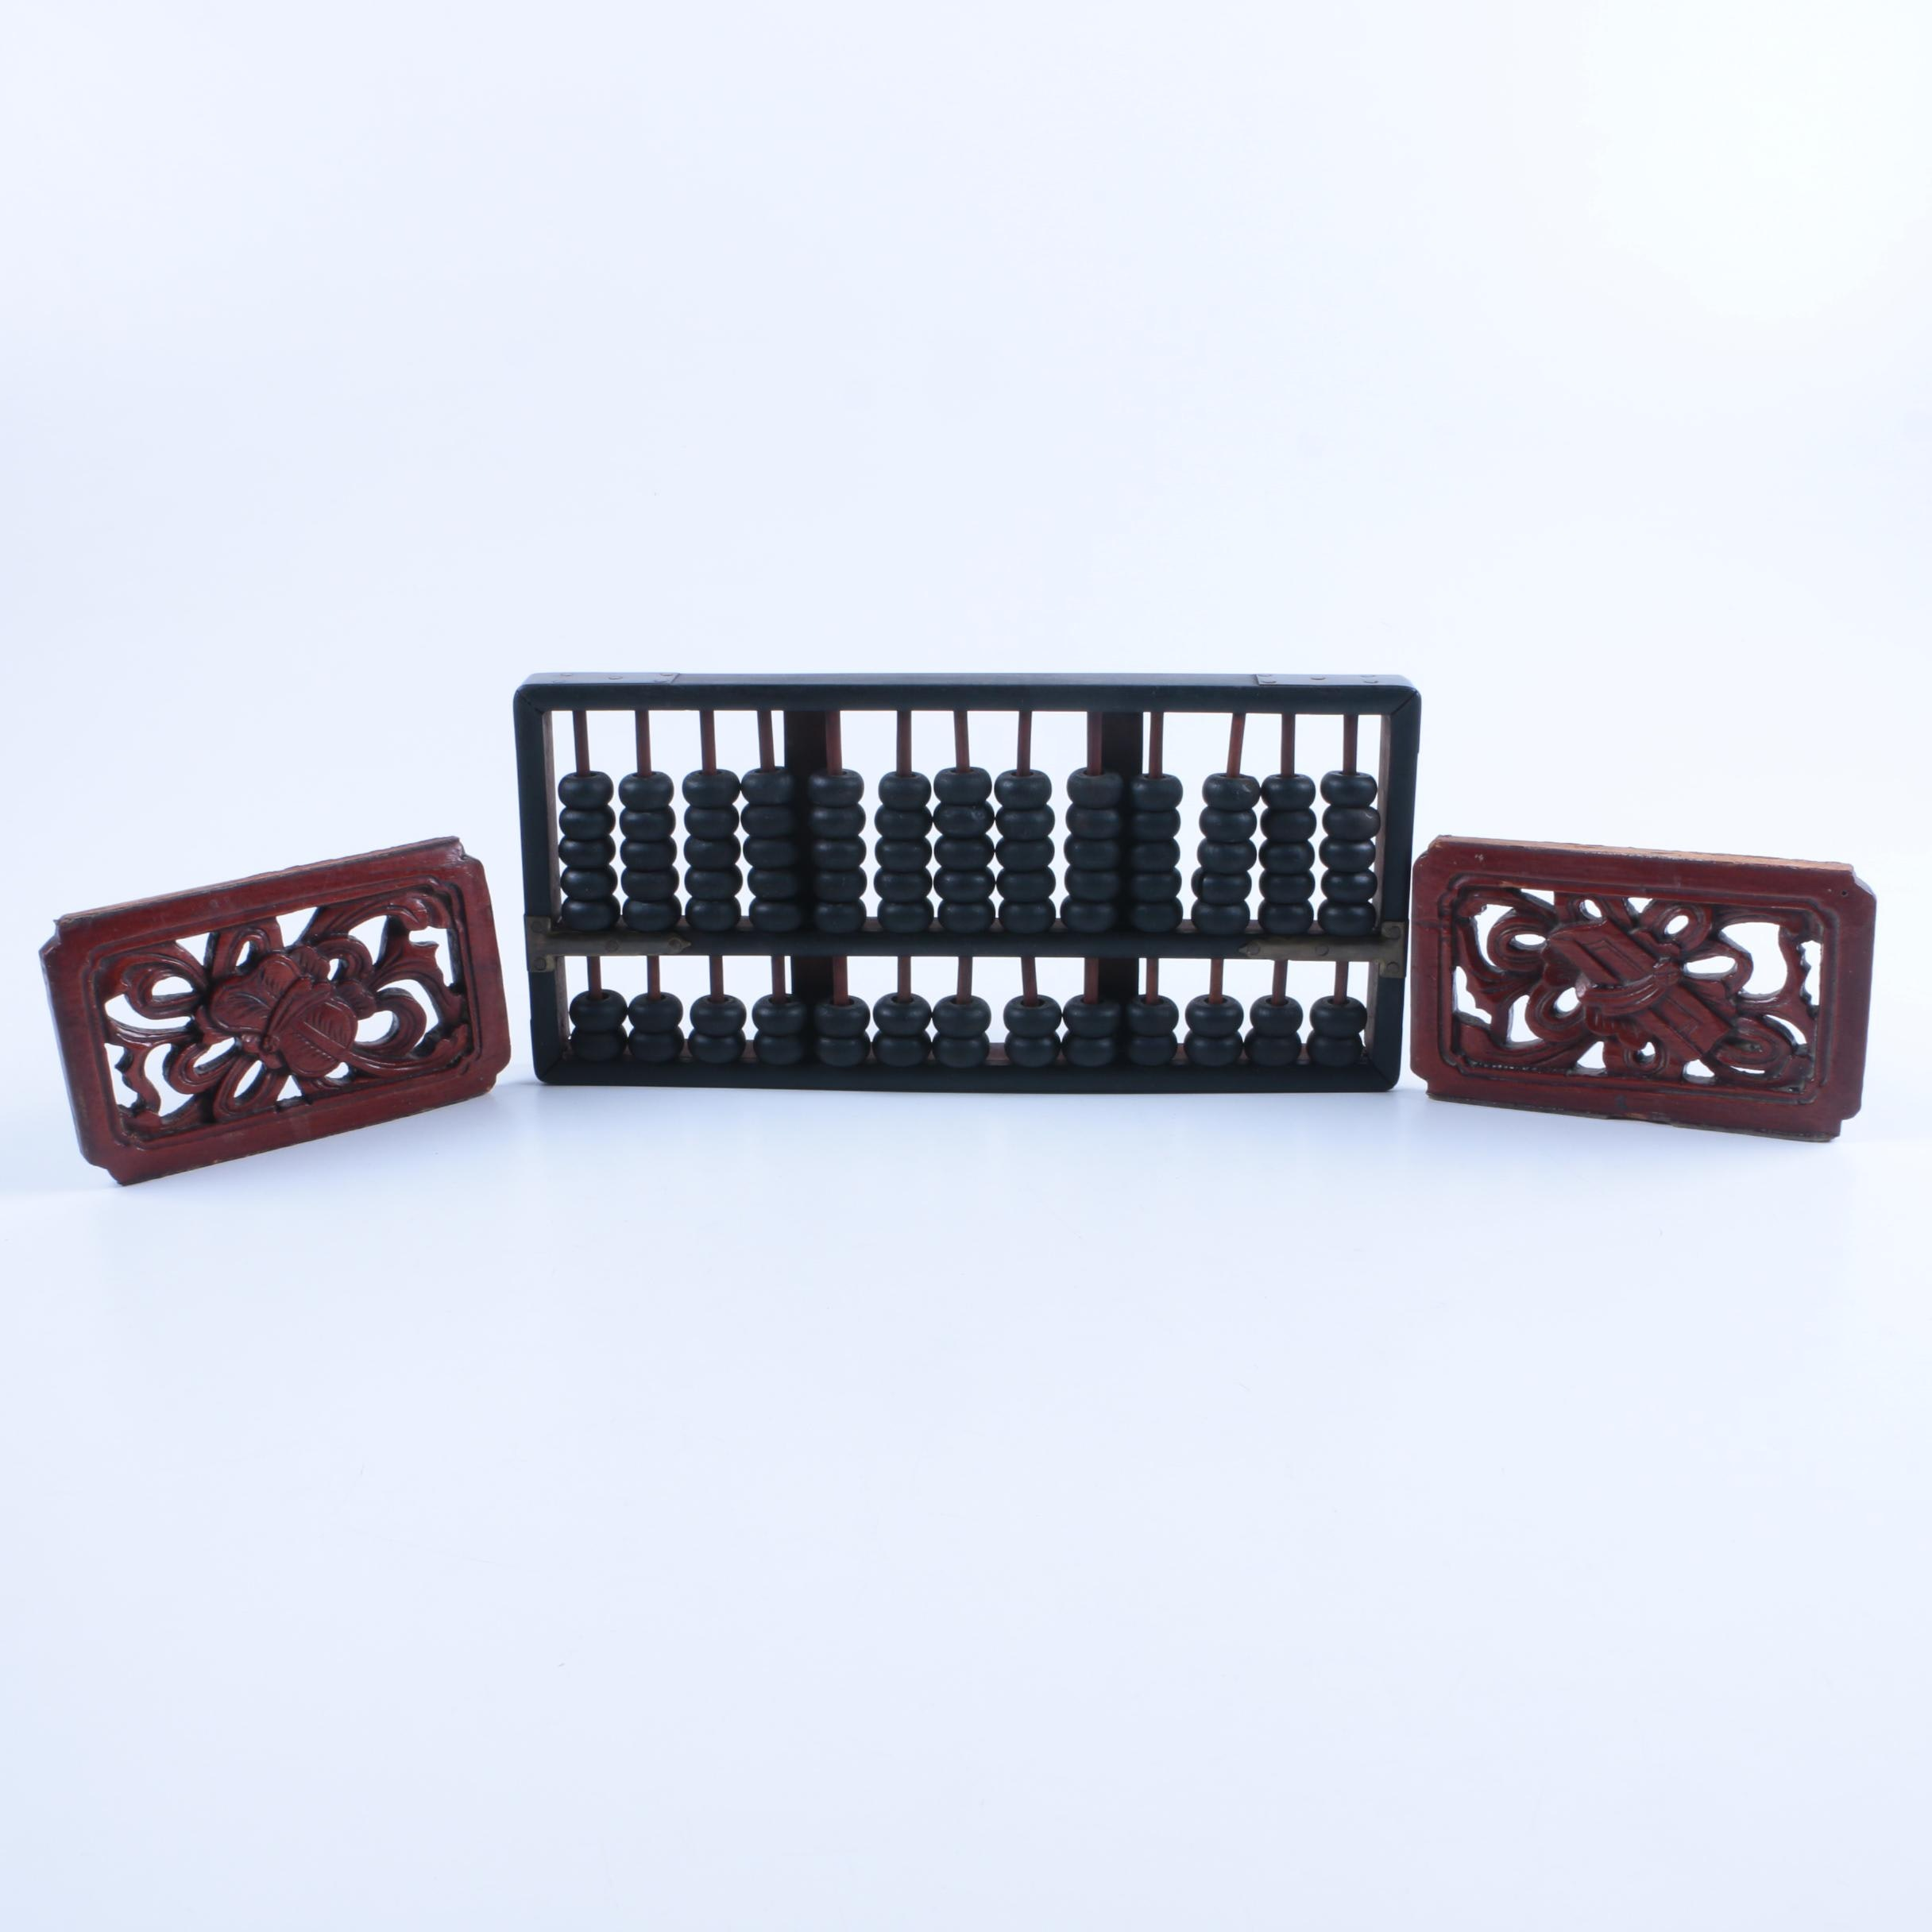 Chinese Abacus and Wood Carvings